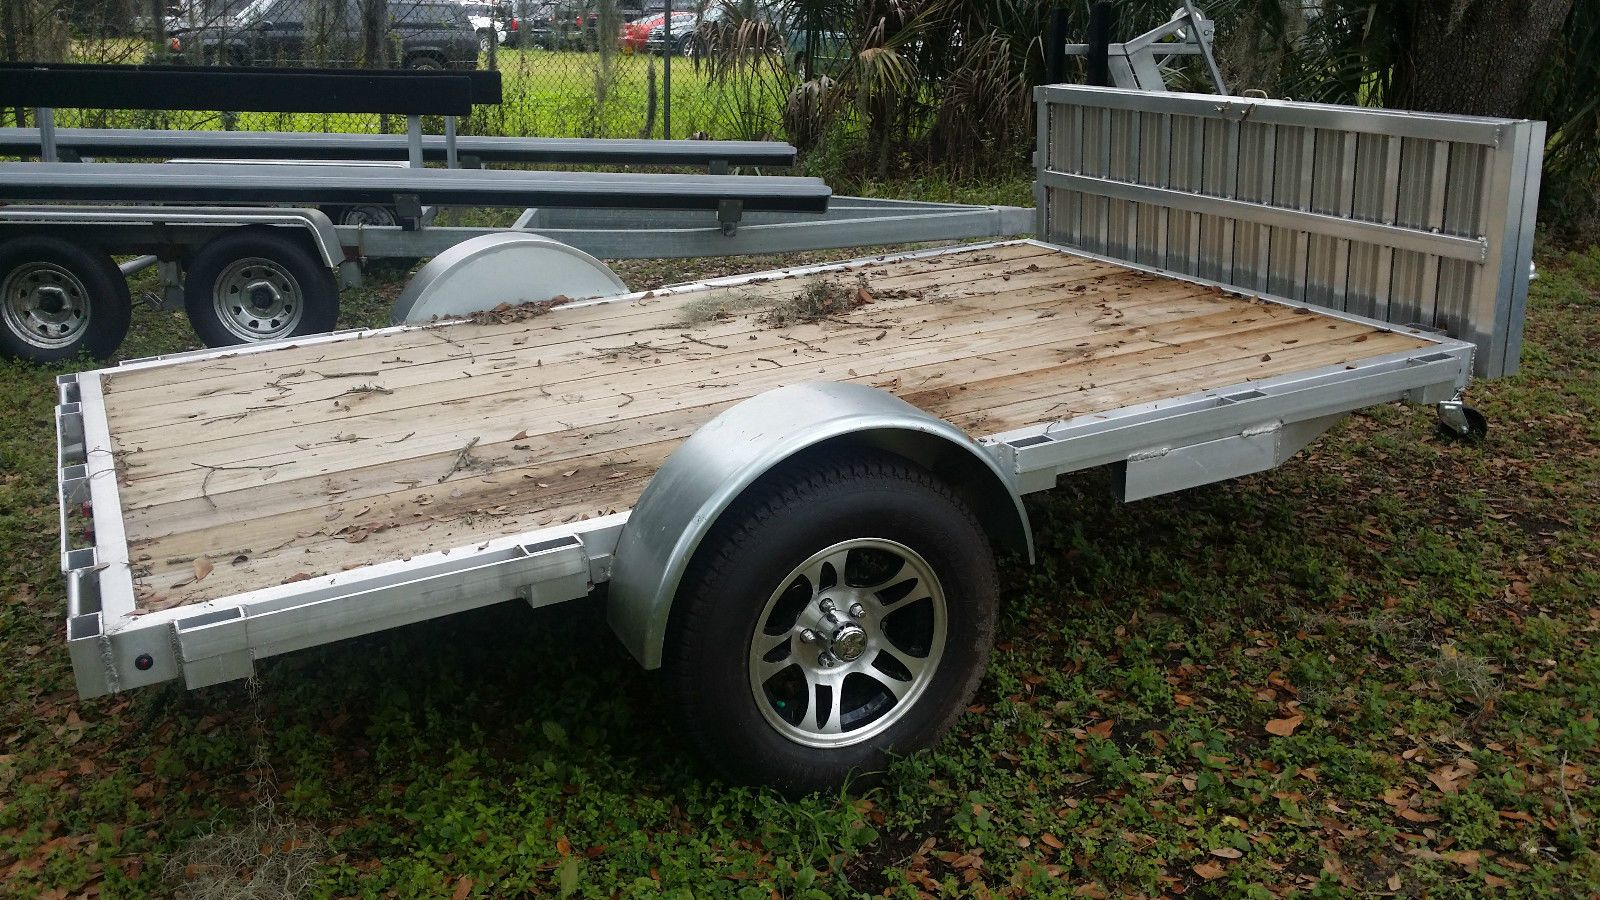 Pin by Gene Floyd on Campers   Utility trailer, Atv ...